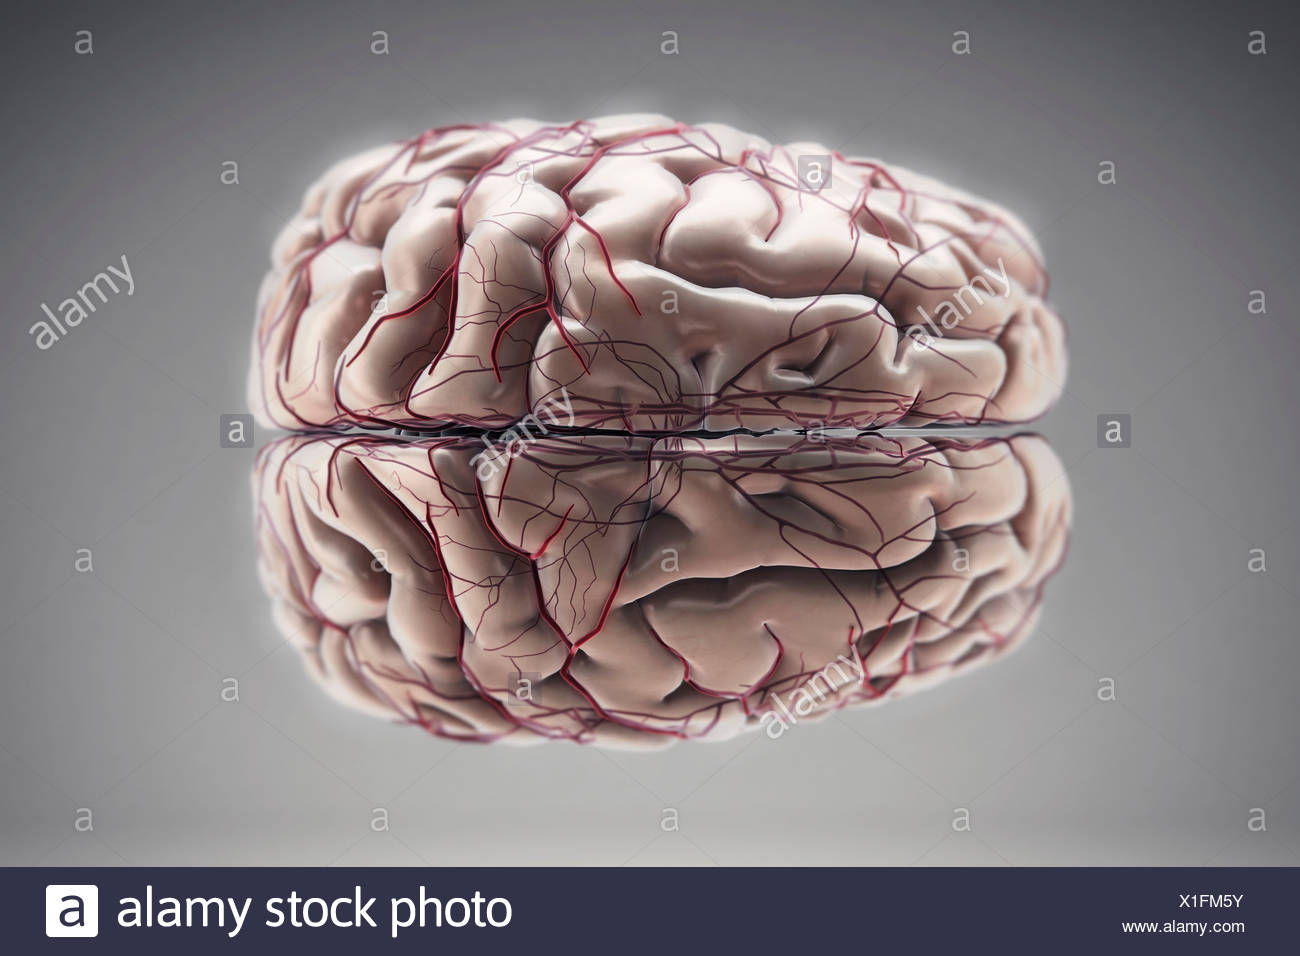 Superior view of an anatomical model of the brain and its blood ...